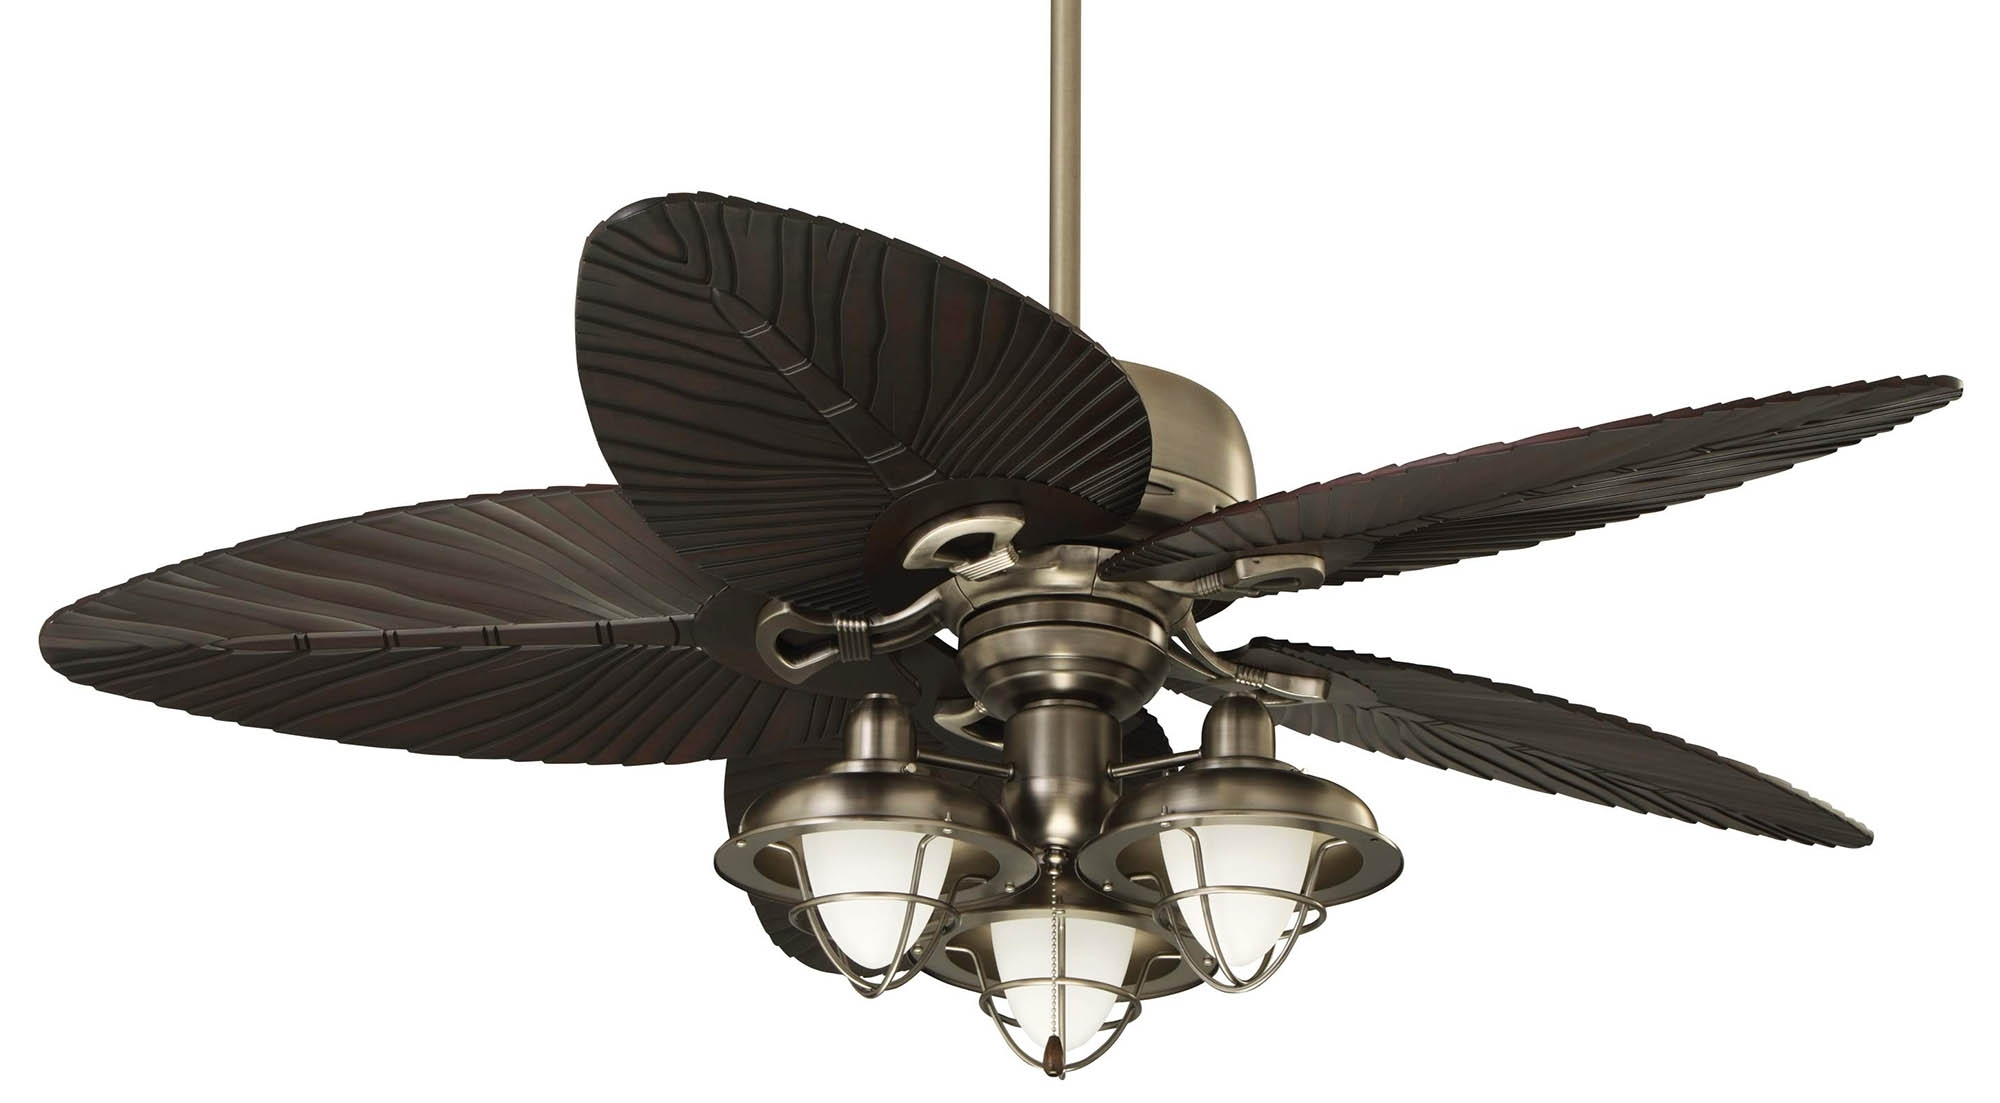 Fabulous Lowes Ceiling Fans Clearance Ceiling Lighting Tropical Intended For Most Recent Outdoor Ceiling Fans With Lights At Lowes (View 17 of 20)